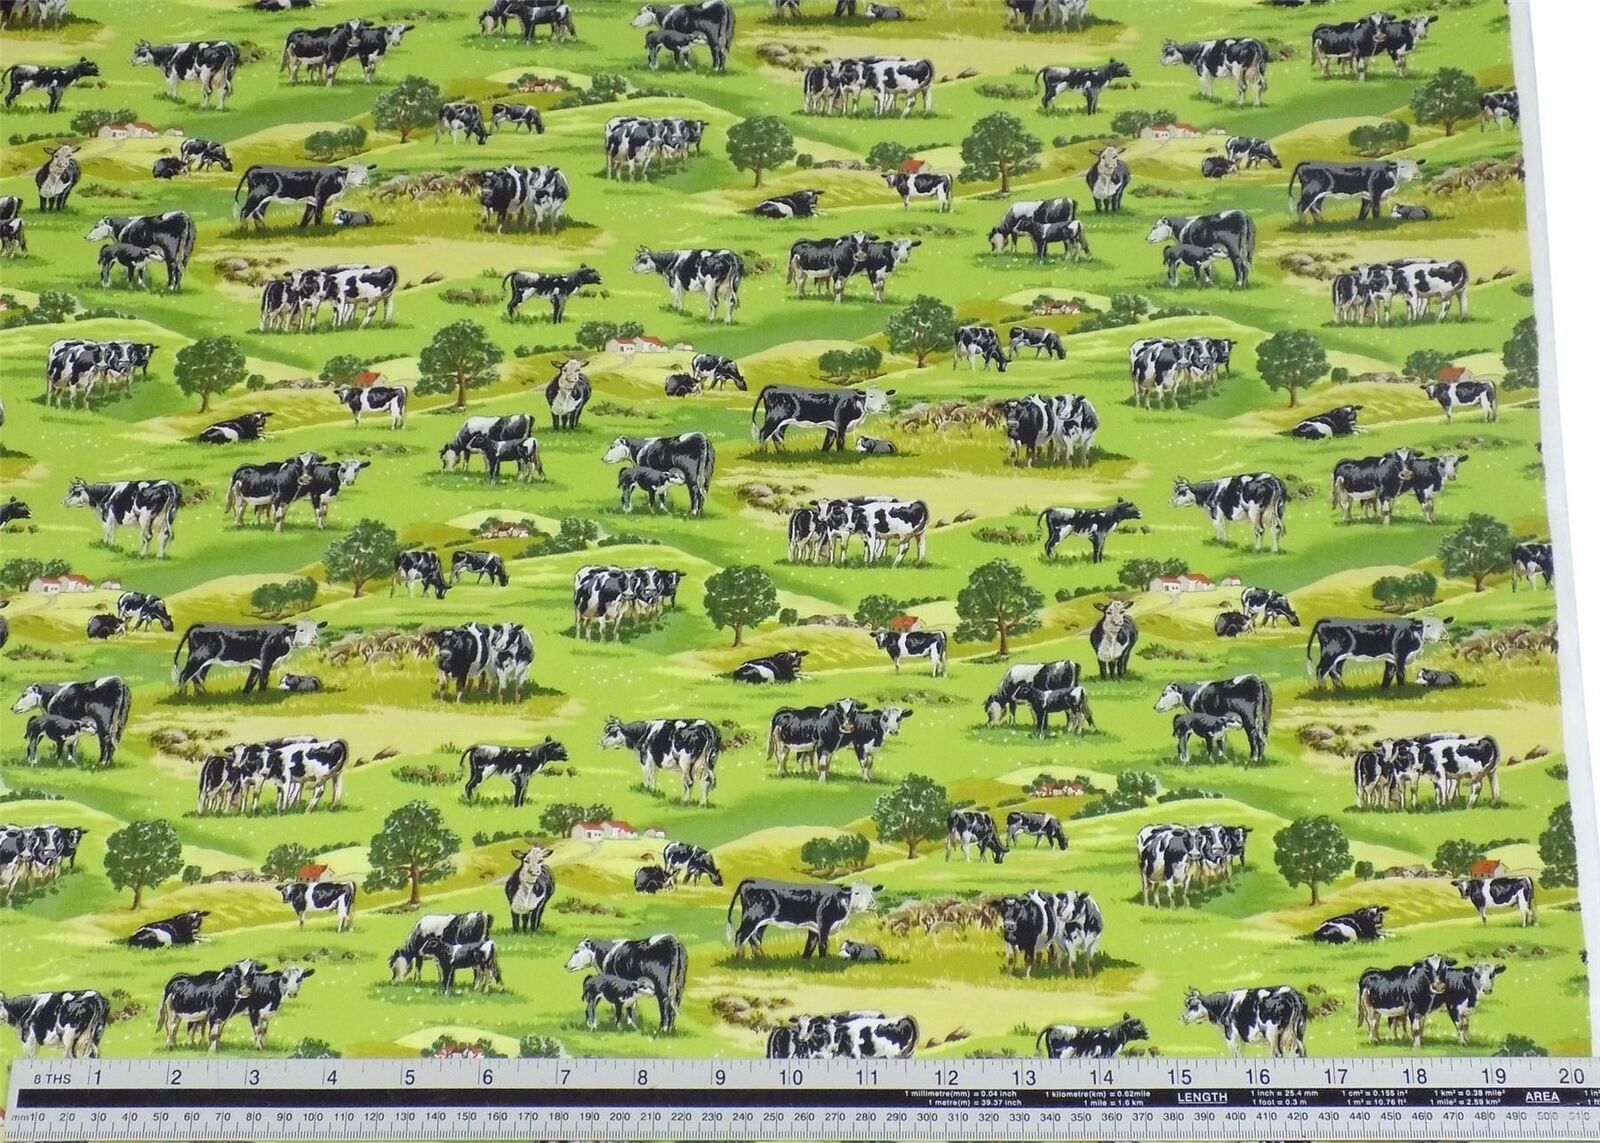 Countryside Cows Grass Green 100% Cotton High Quality Fabric Material 2 Sizes image 2